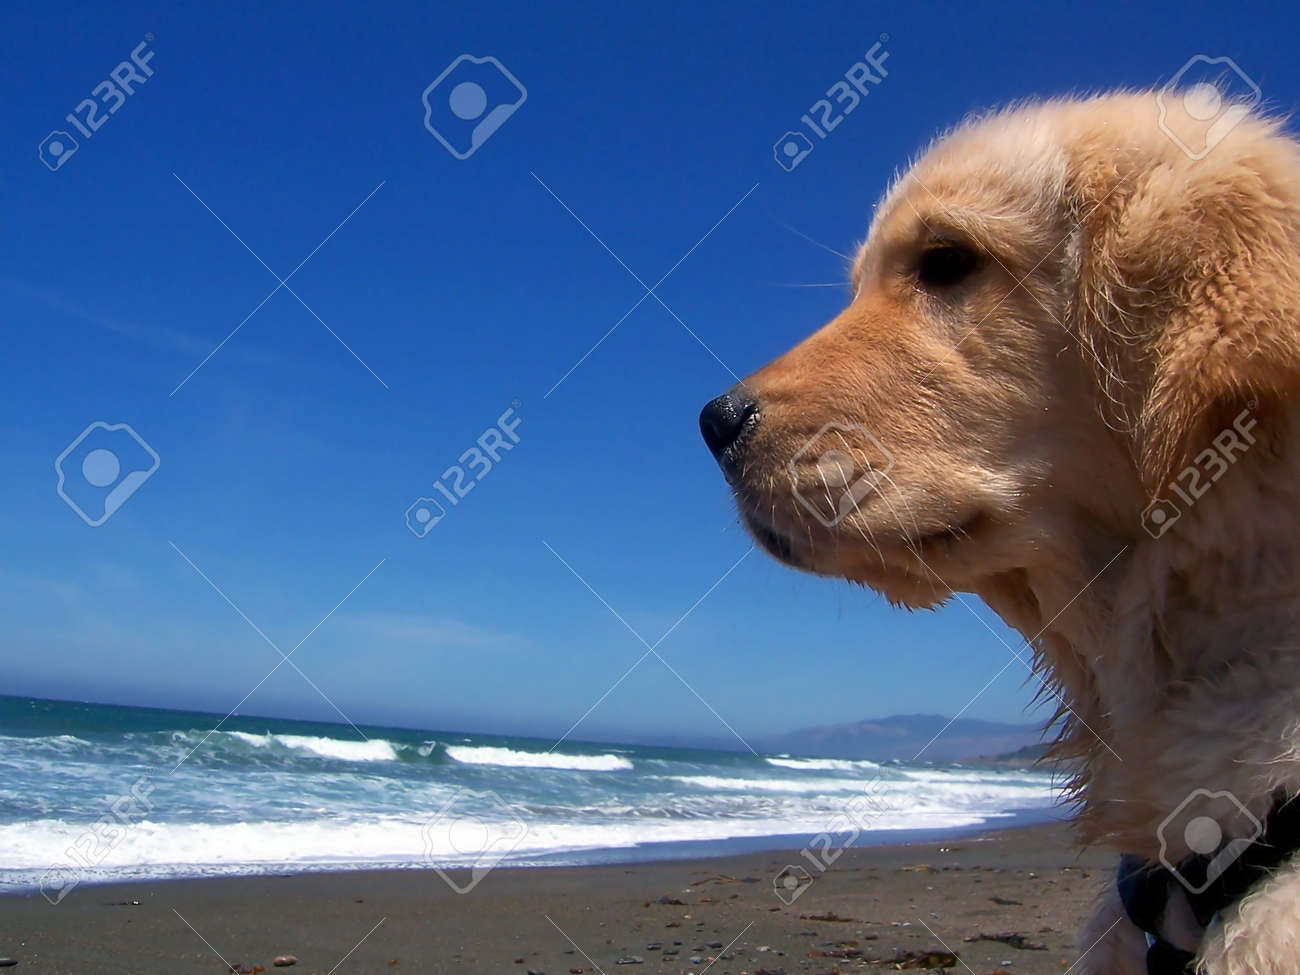 Golden Retriever Puppy Side View At The Beach Stock Photo Picture And Royalty Free Image Image 4612918